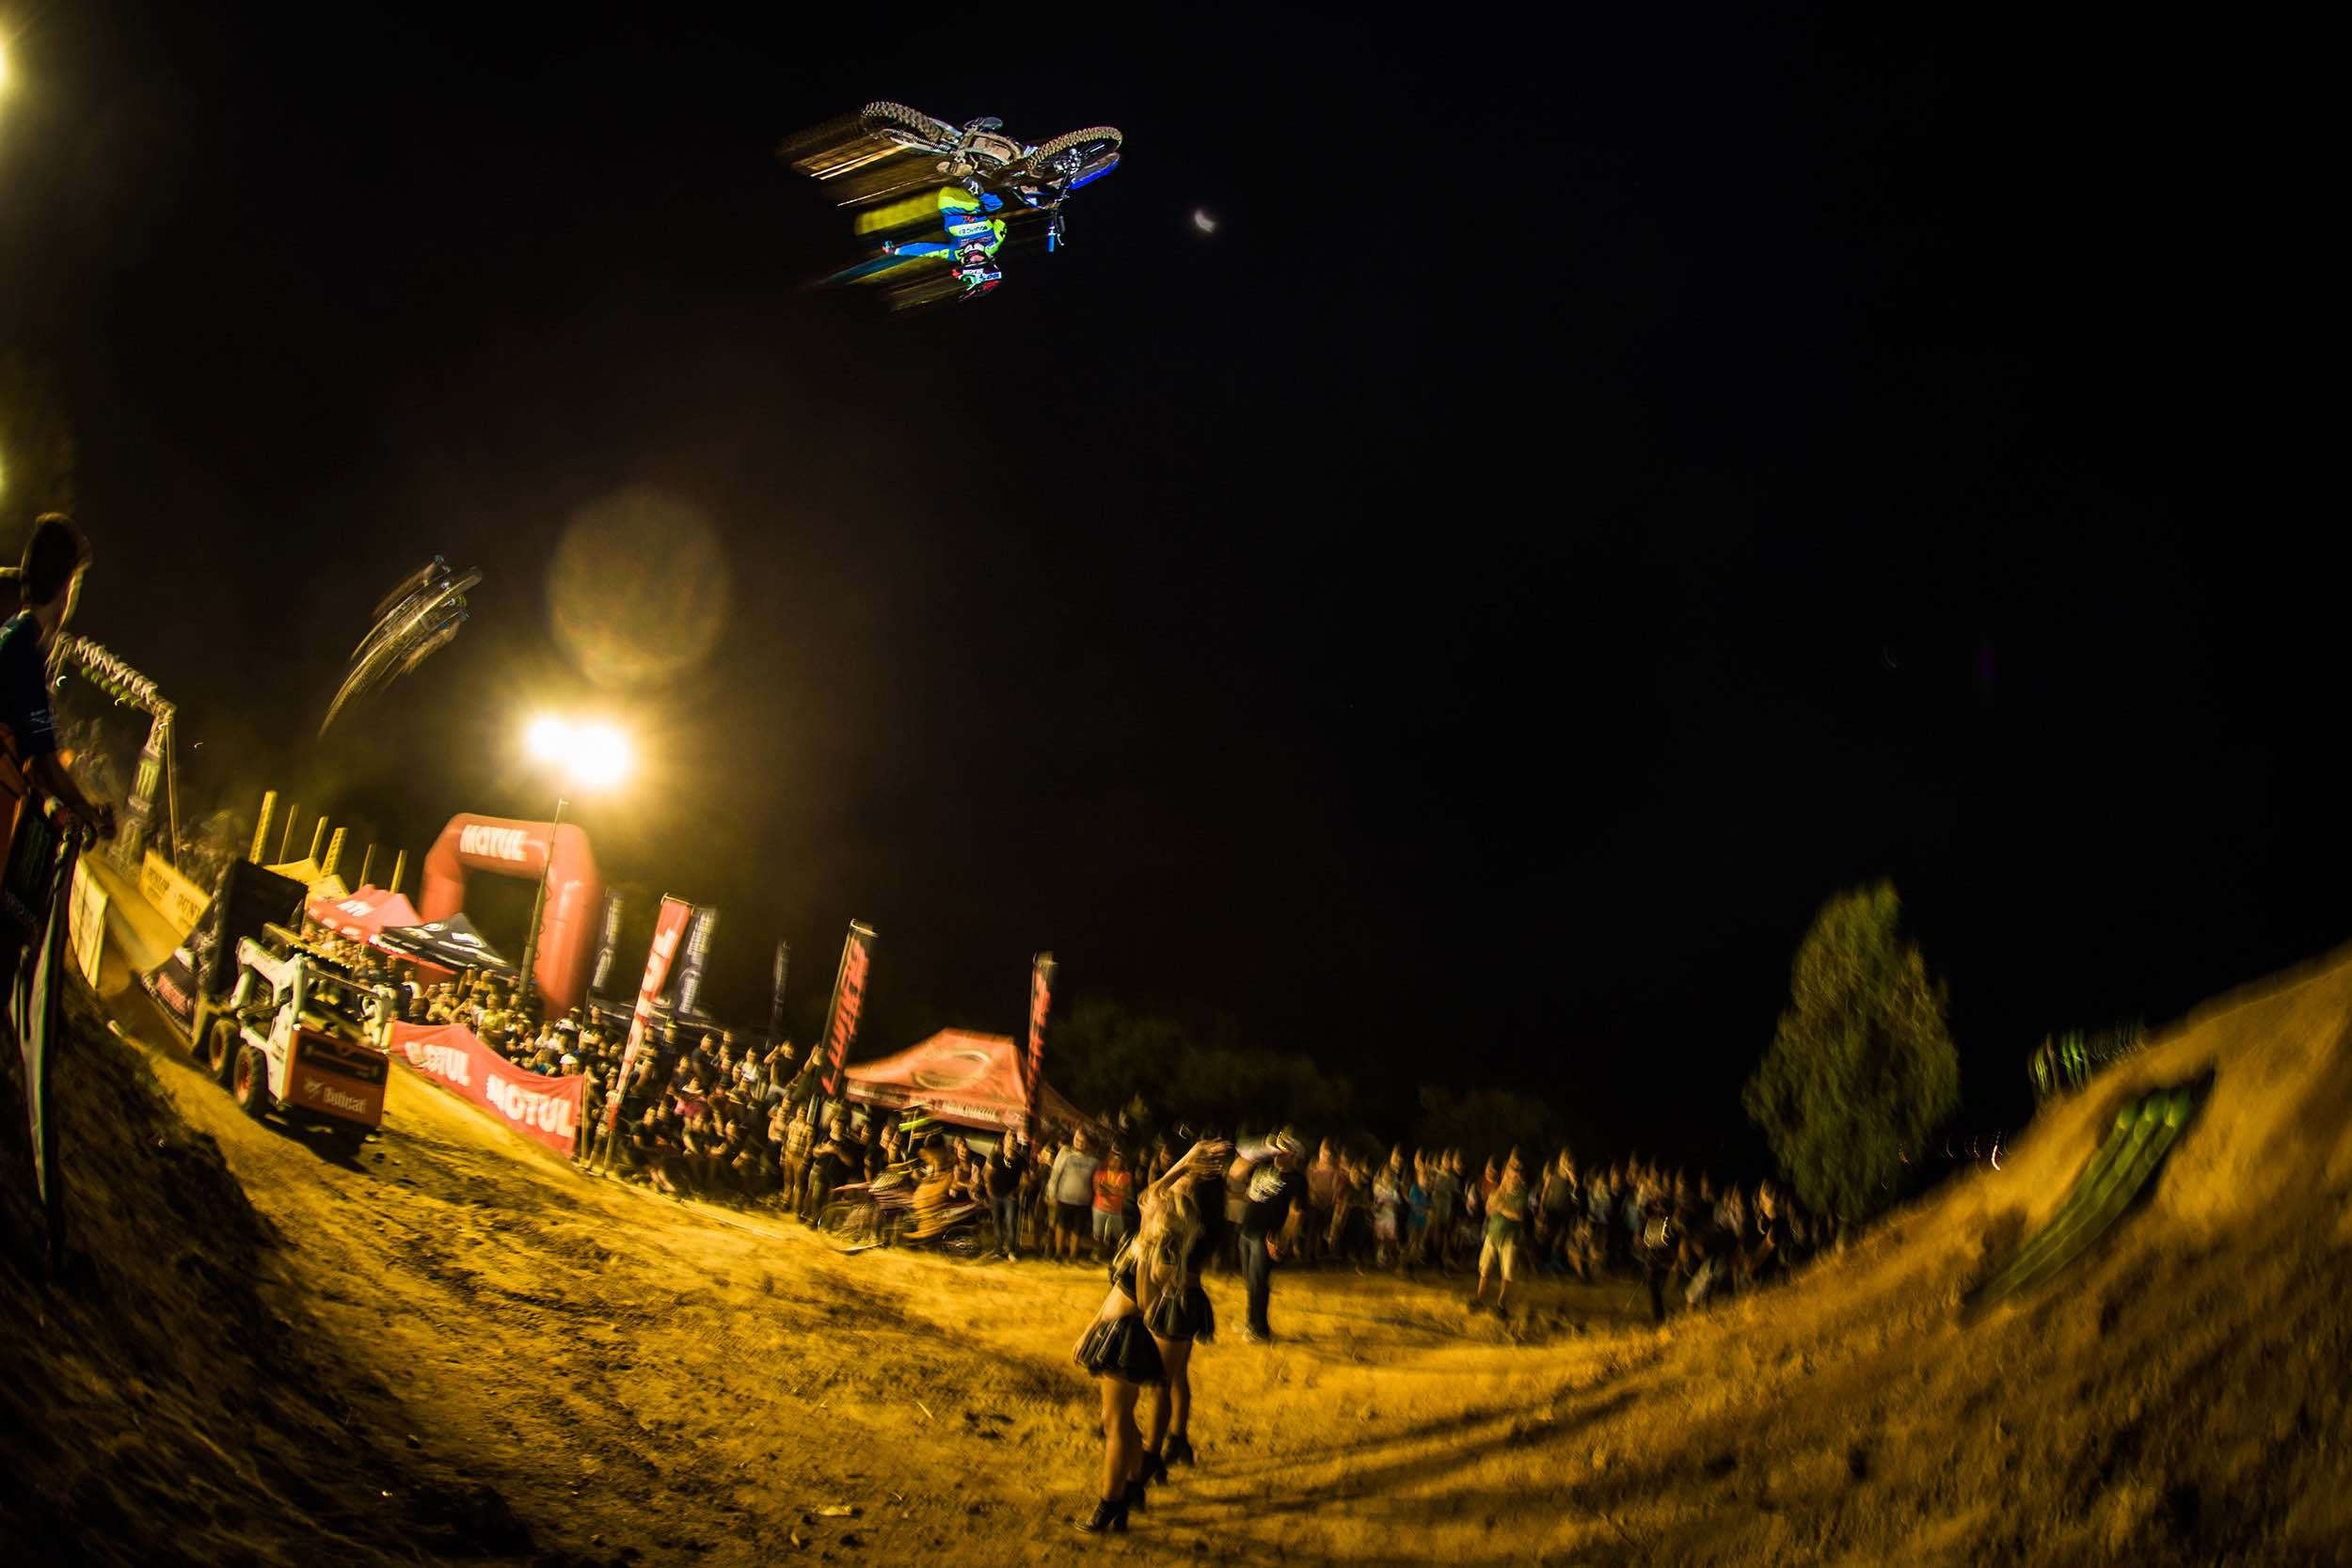 FMX rider Dallan Goldman is crowned King of the Whip 2018